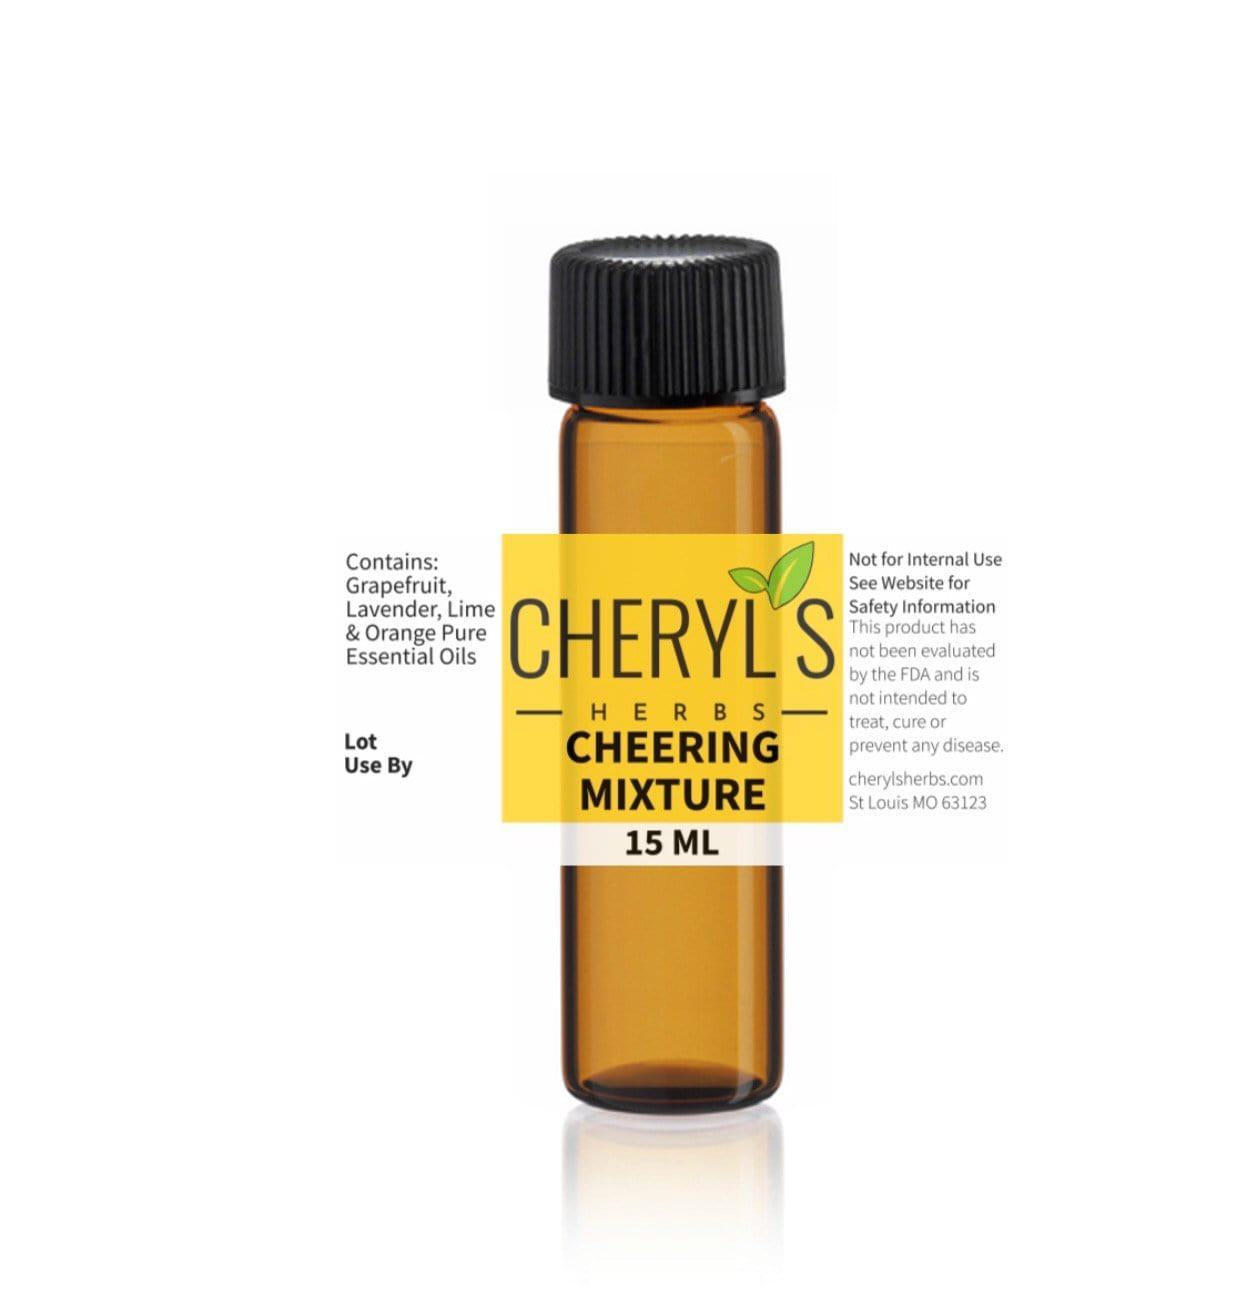 CHEERING MIXTURE - Cheryls Herbs